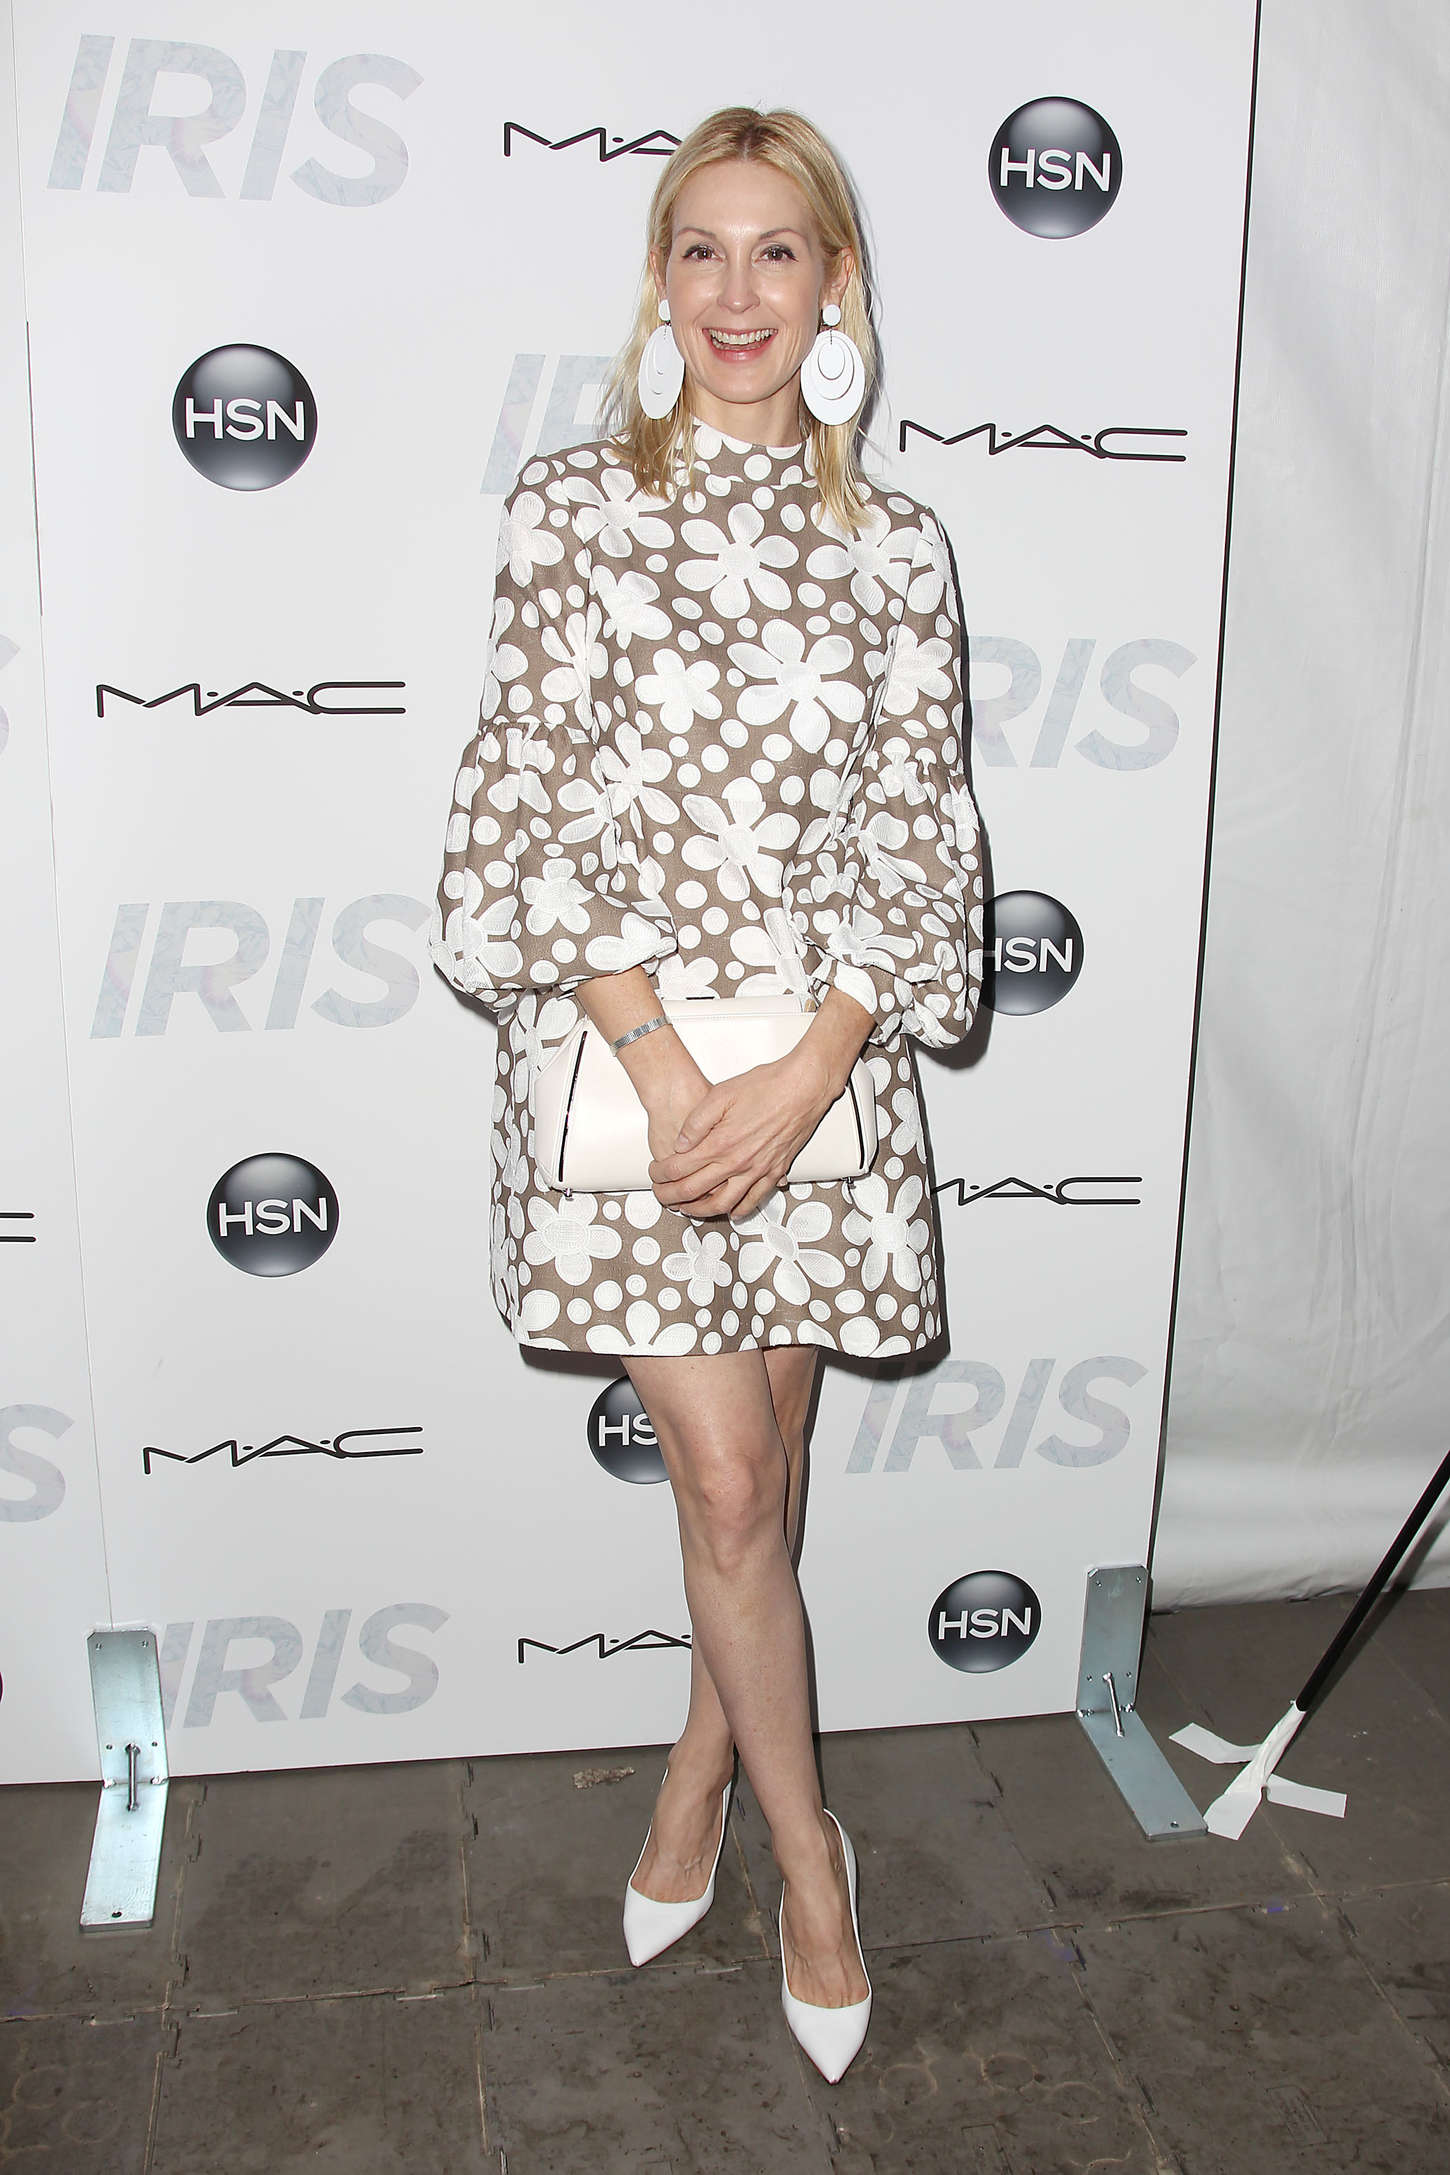 Kelly Rutherford Iris Premiere in New York